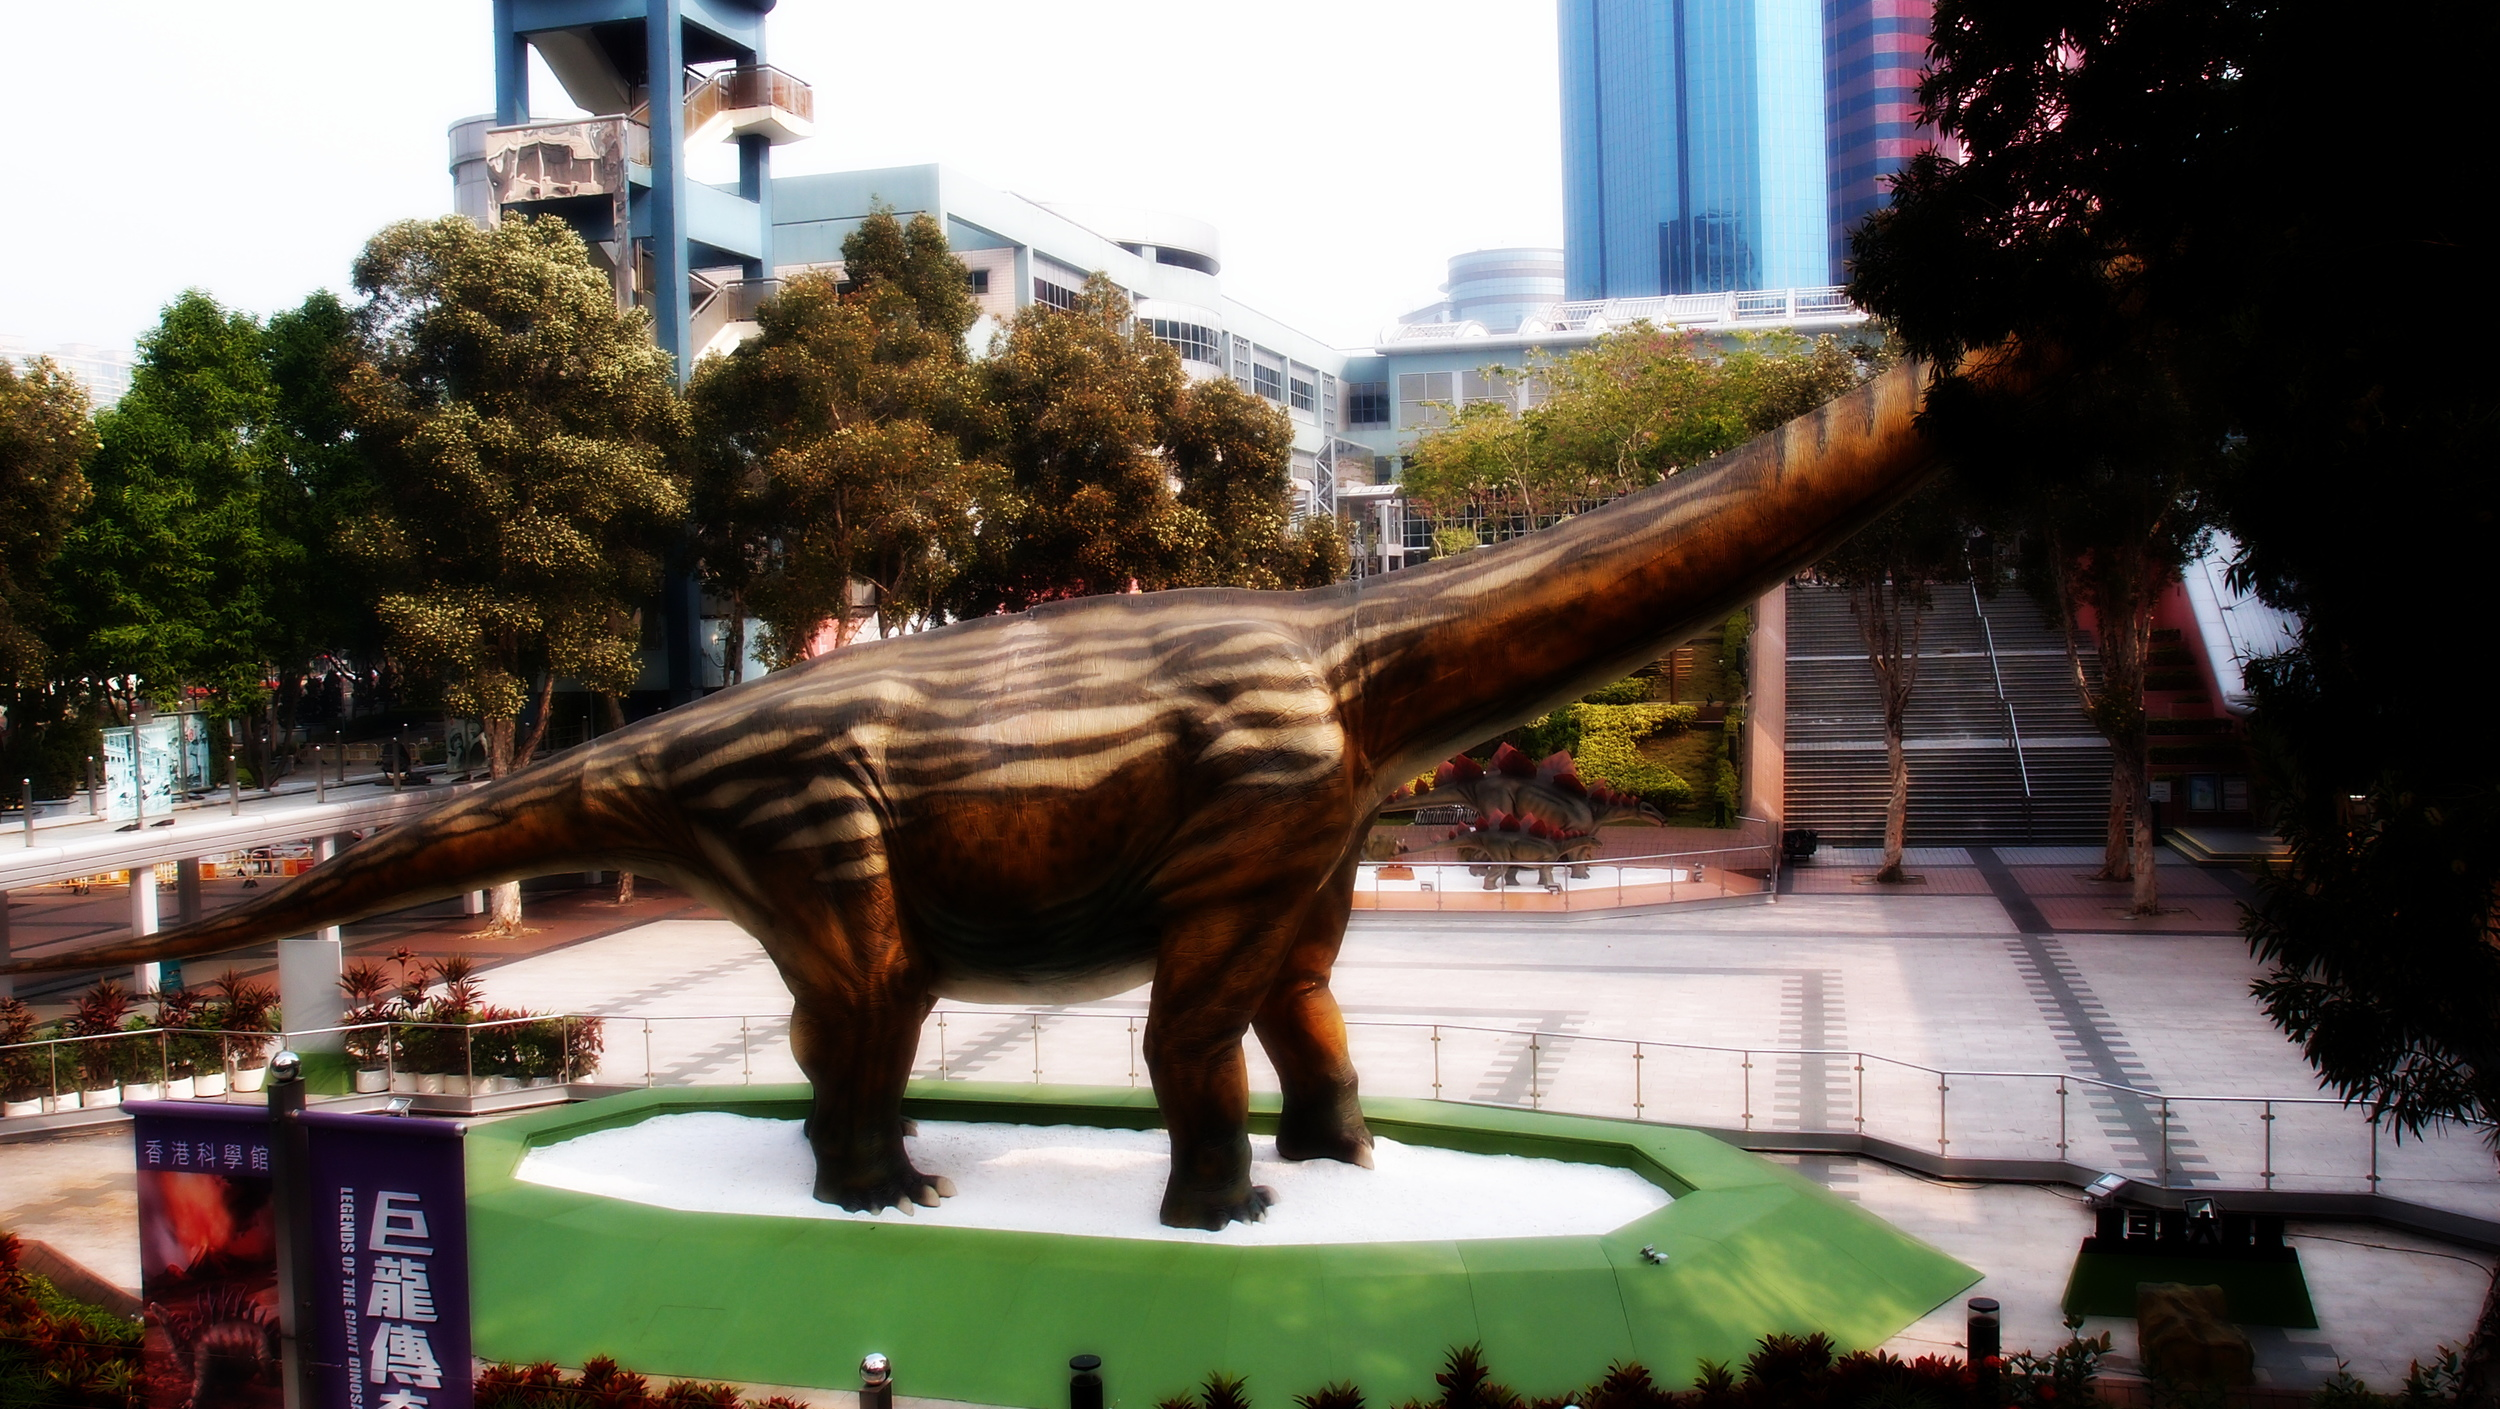 Dinosaurs at the HK Science Museum